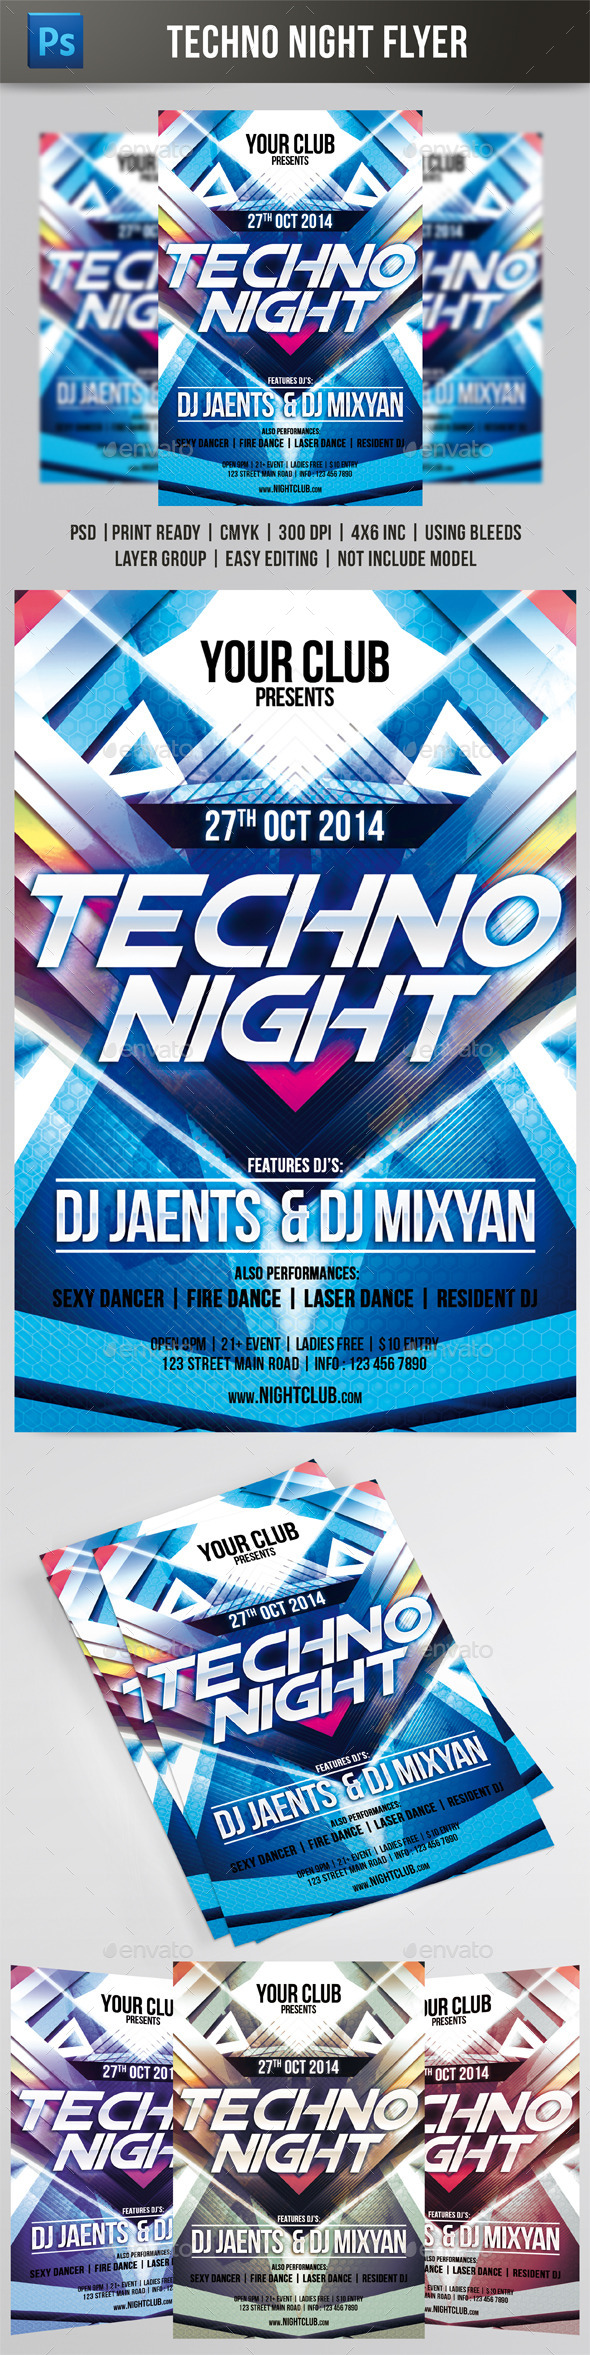 GraphicRiver Techno Night Flyer 8830297